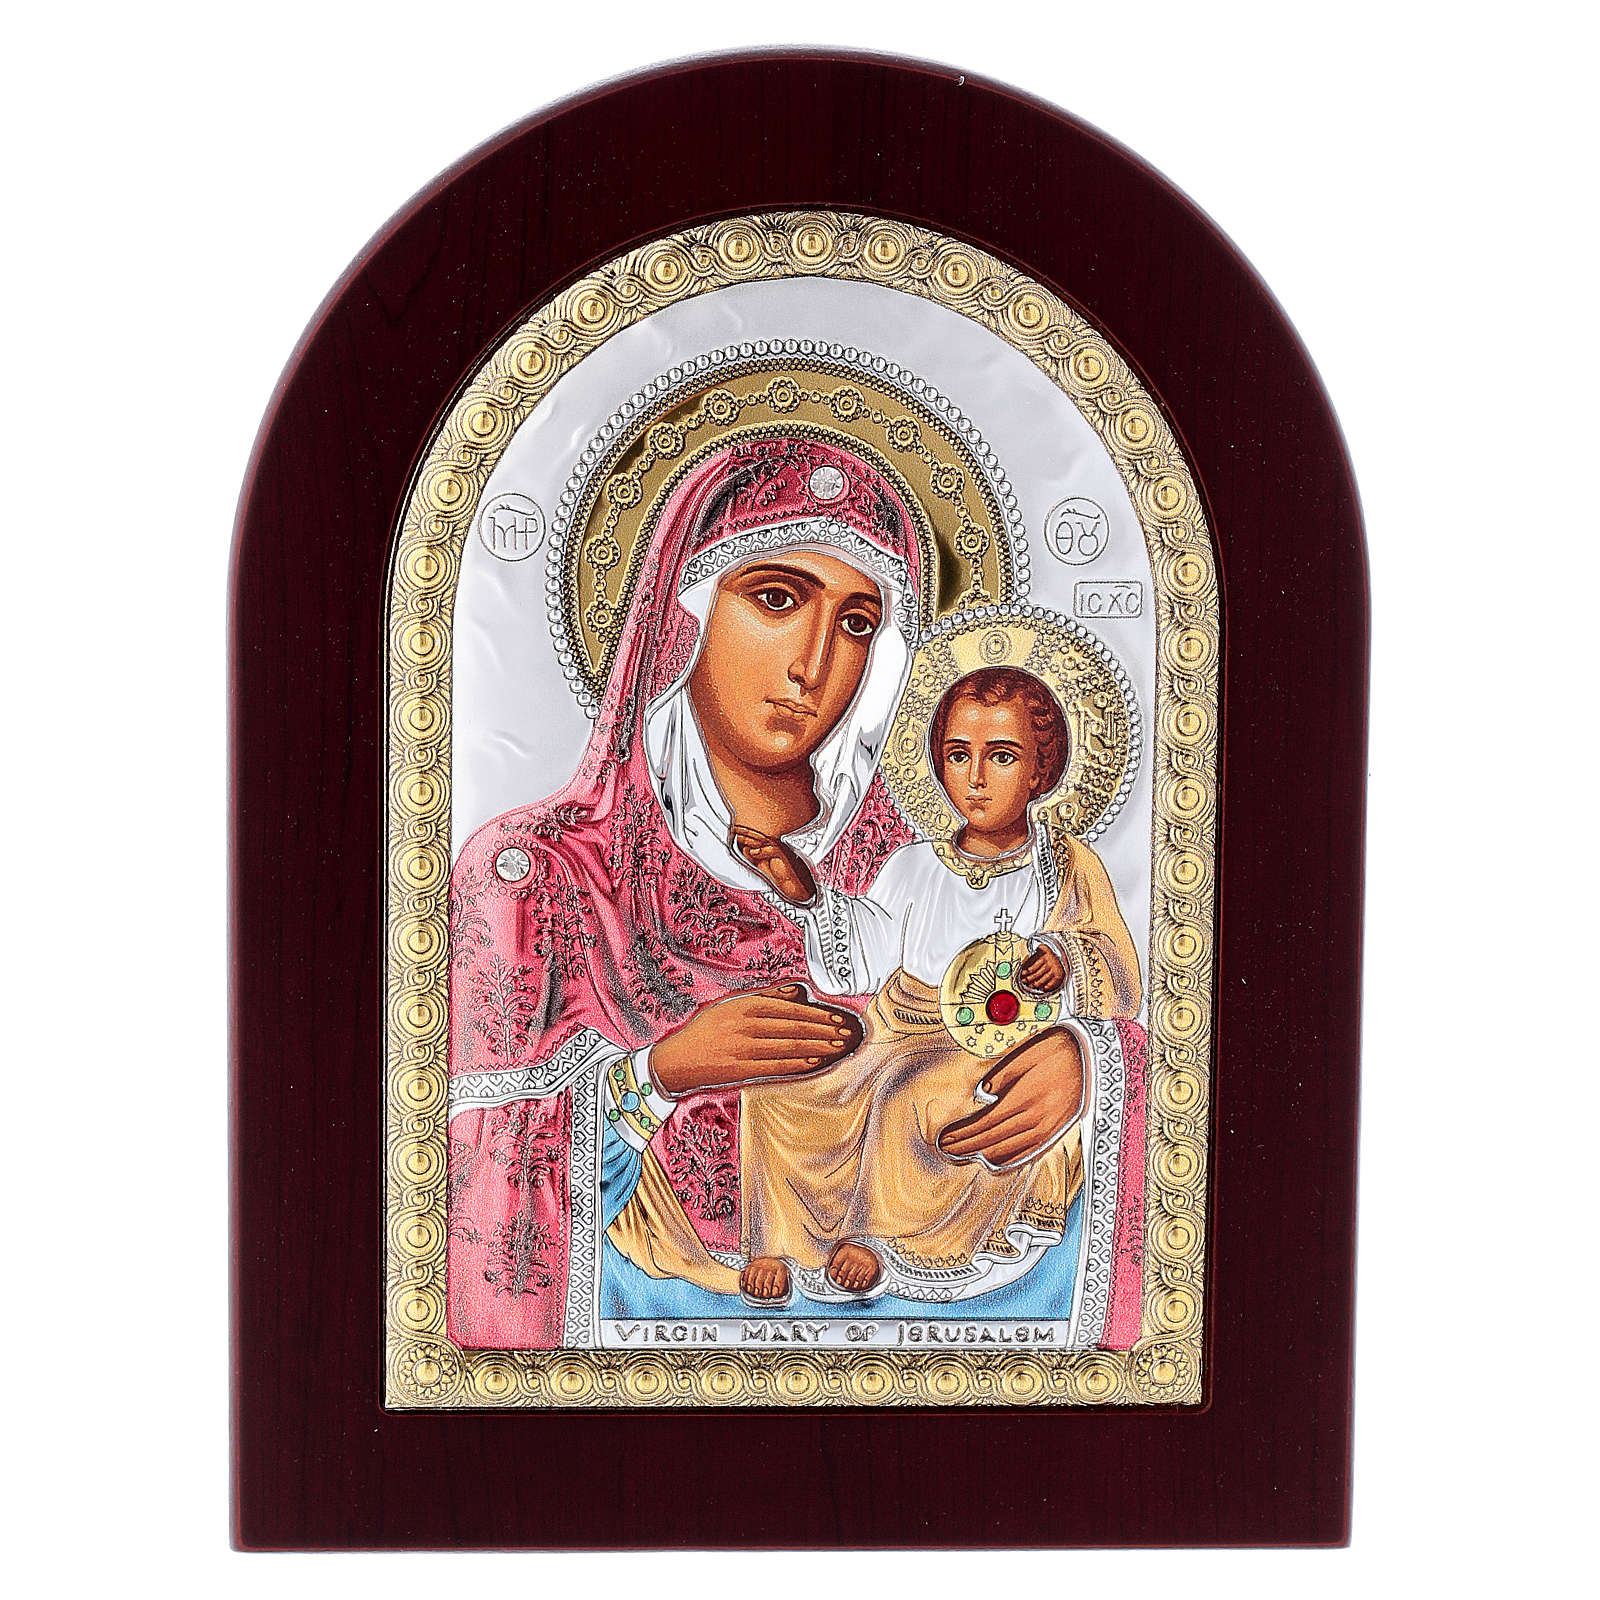 Virgin Mary of Jerusalem icon in silver, silkscreen printing 4